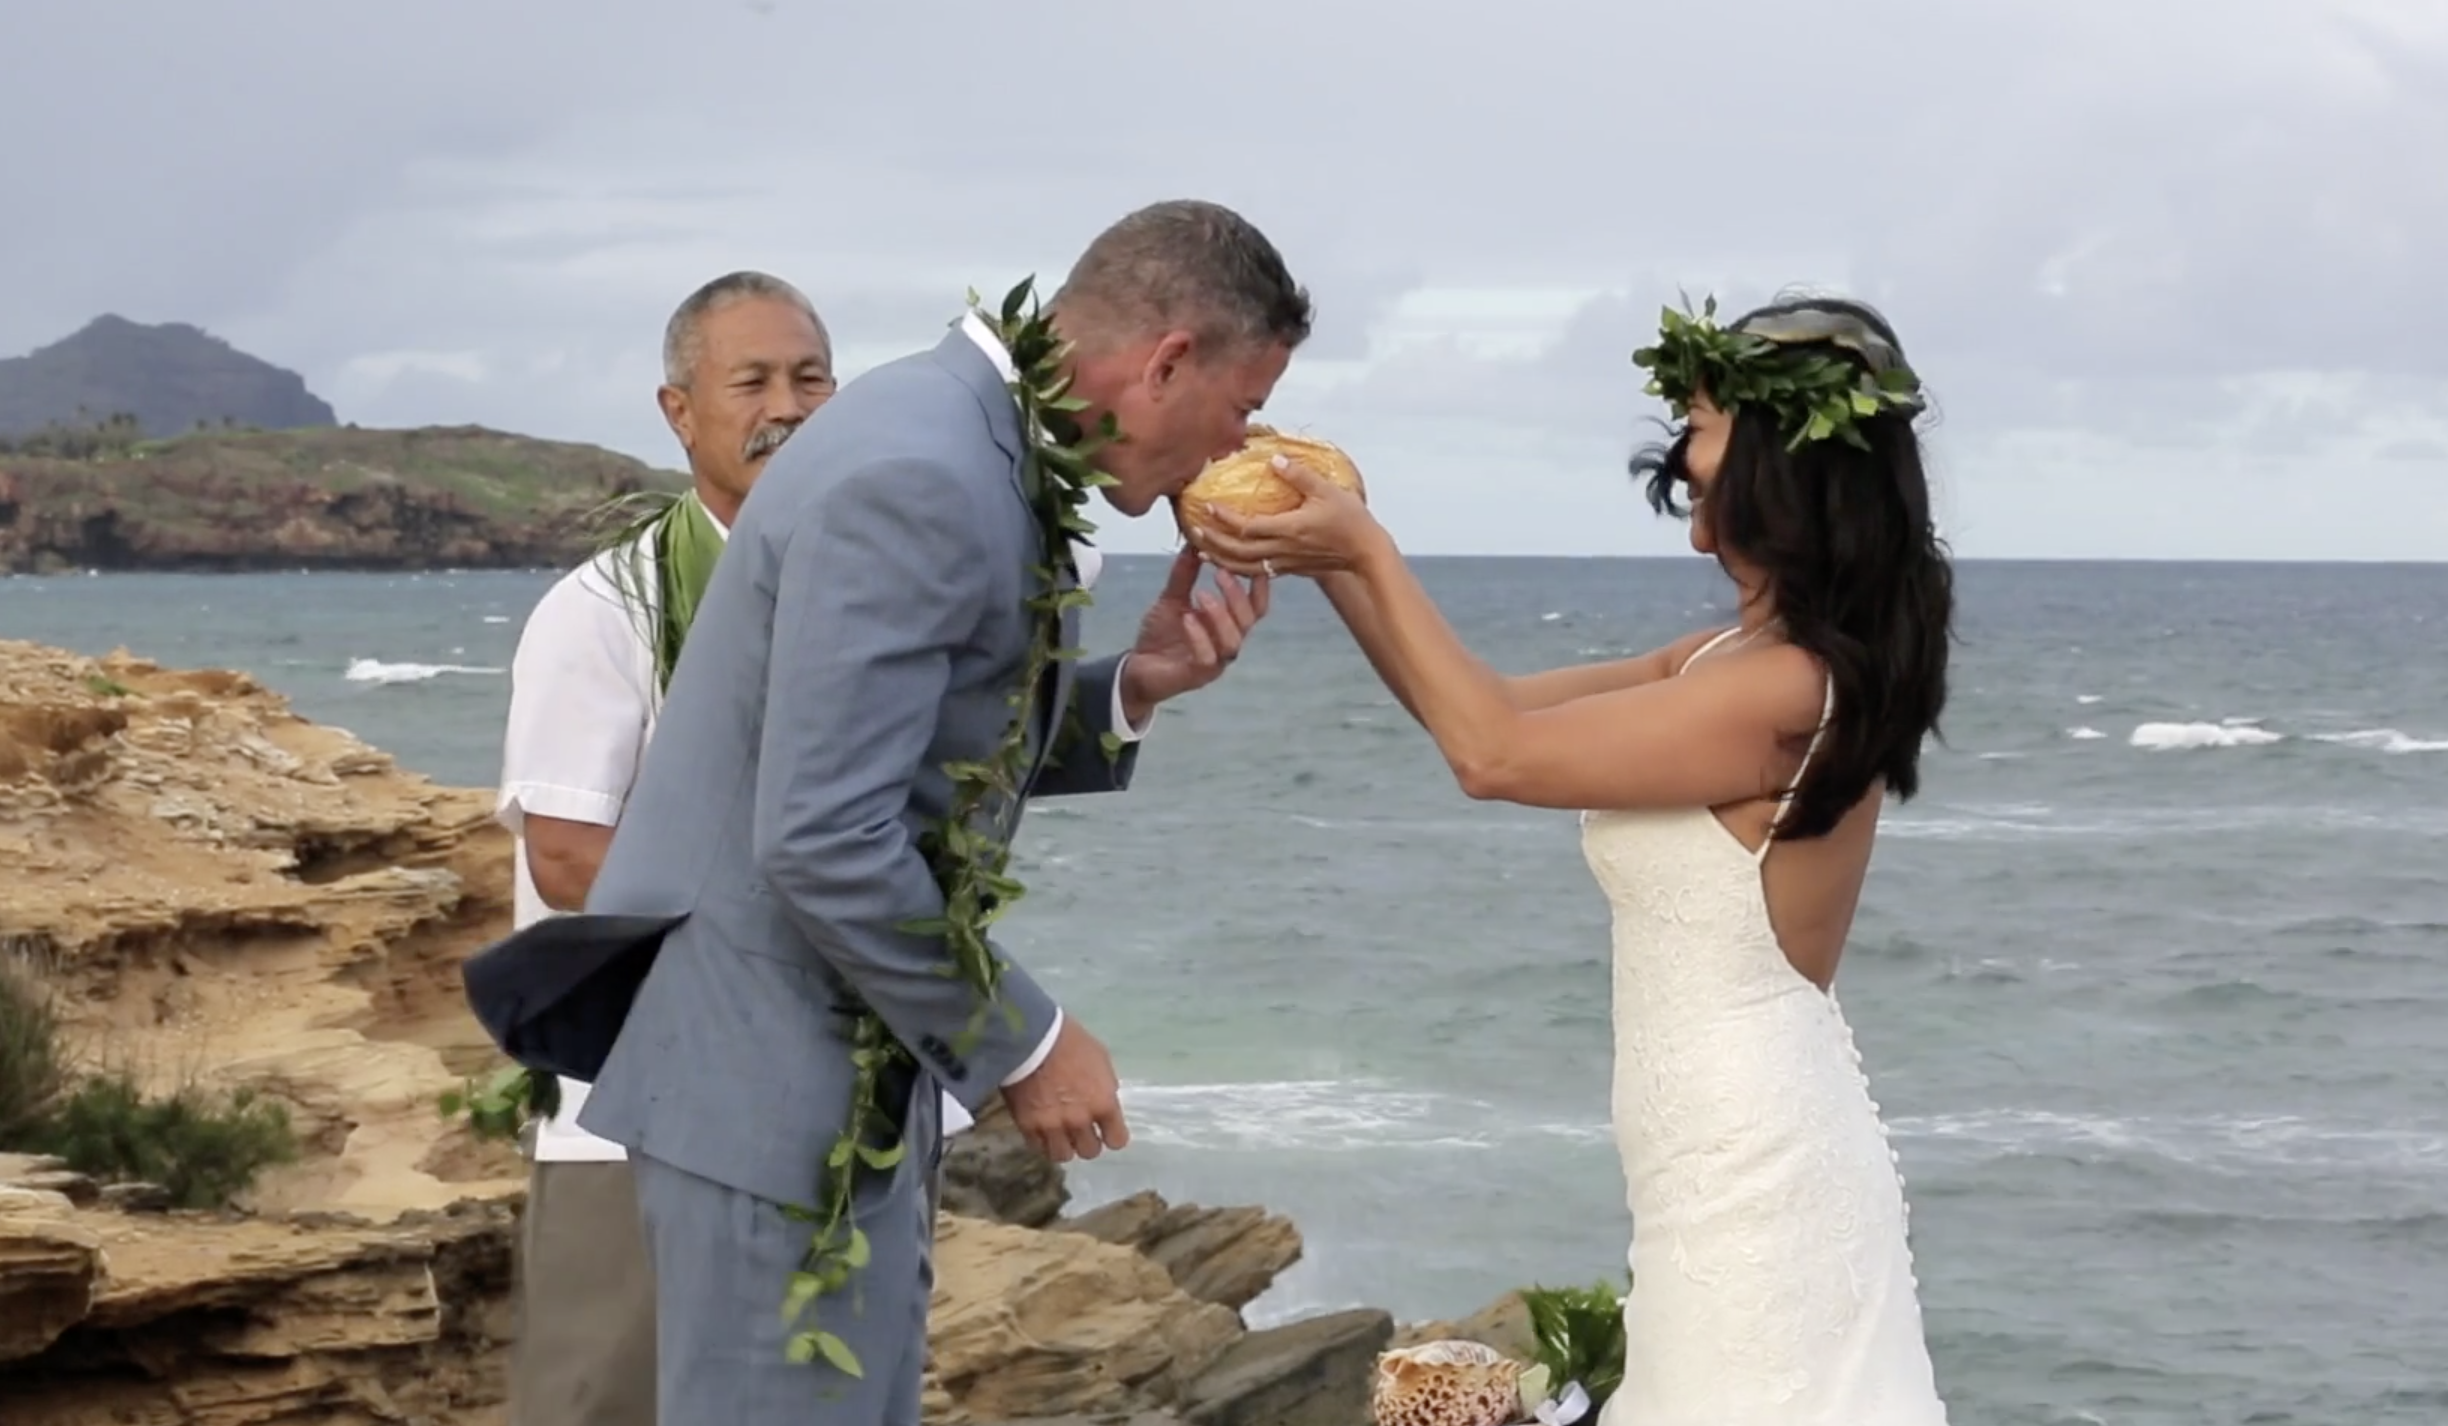 10 Amazing Officiant Speeches That Will Seriously Inspire You